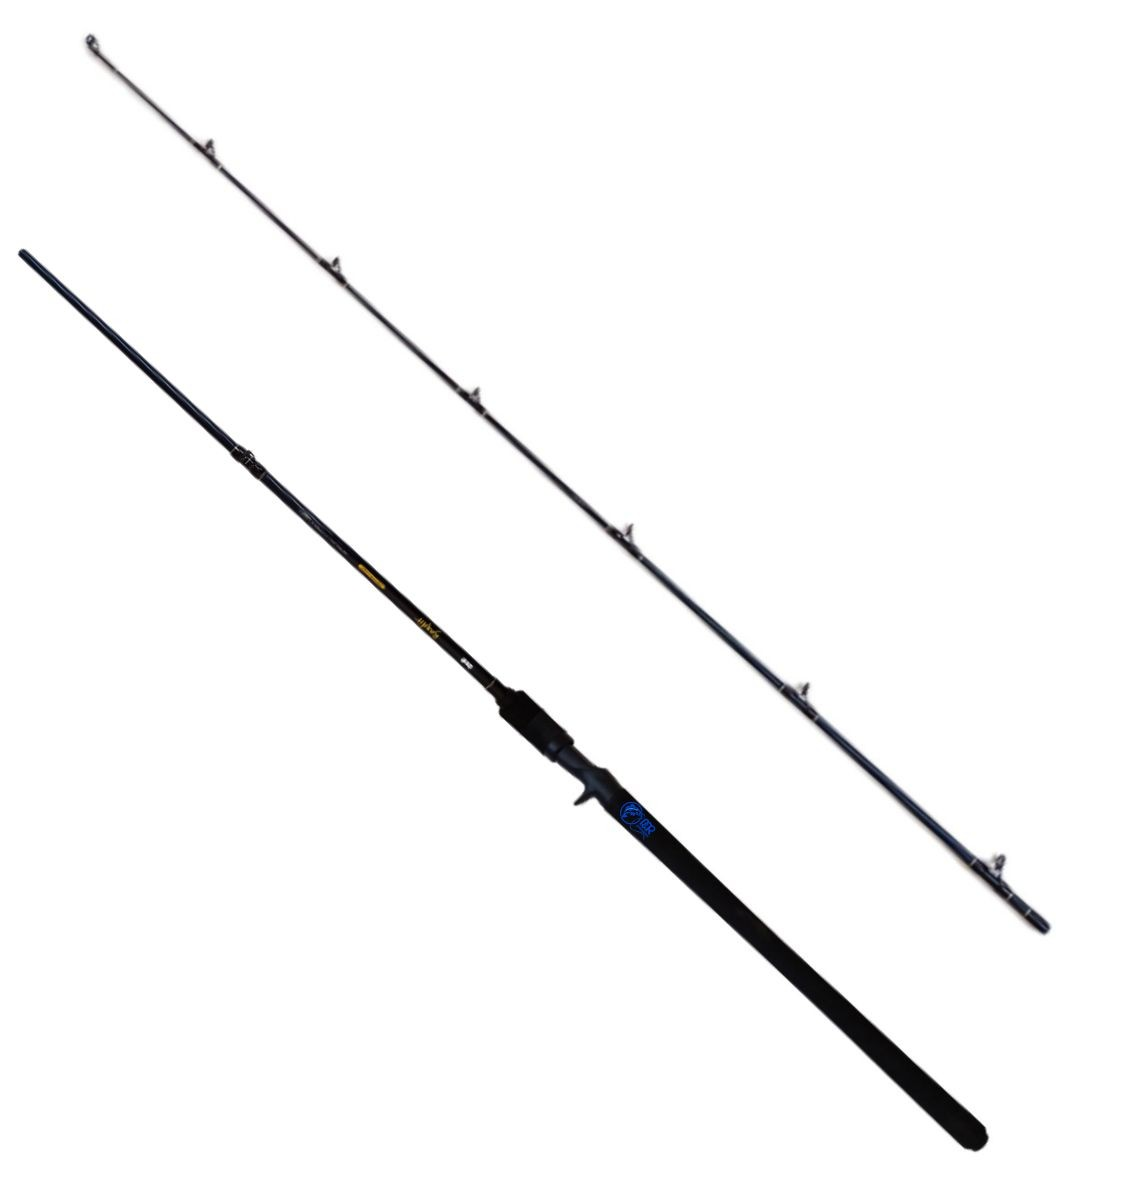 Vara Carretilha Bandit Power Cast 2.44m 15-50b 2 Parte Celta